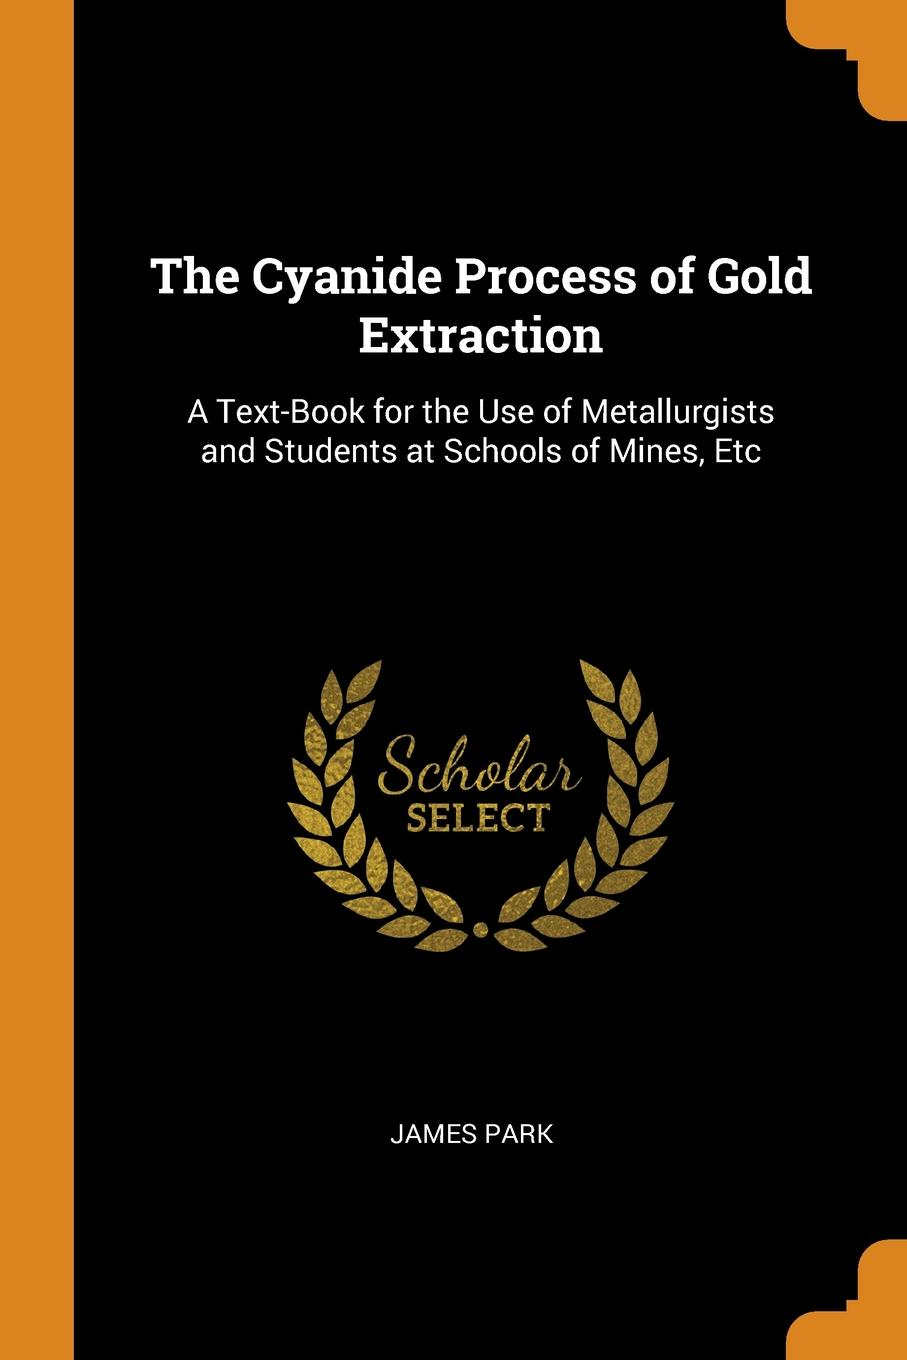 The Cyanide Process of Gold Extraction. A Text-Book for the Use of Metallurgists and Students at Schools of Mines, Etc This work has been selected by scholars as being culturally important...